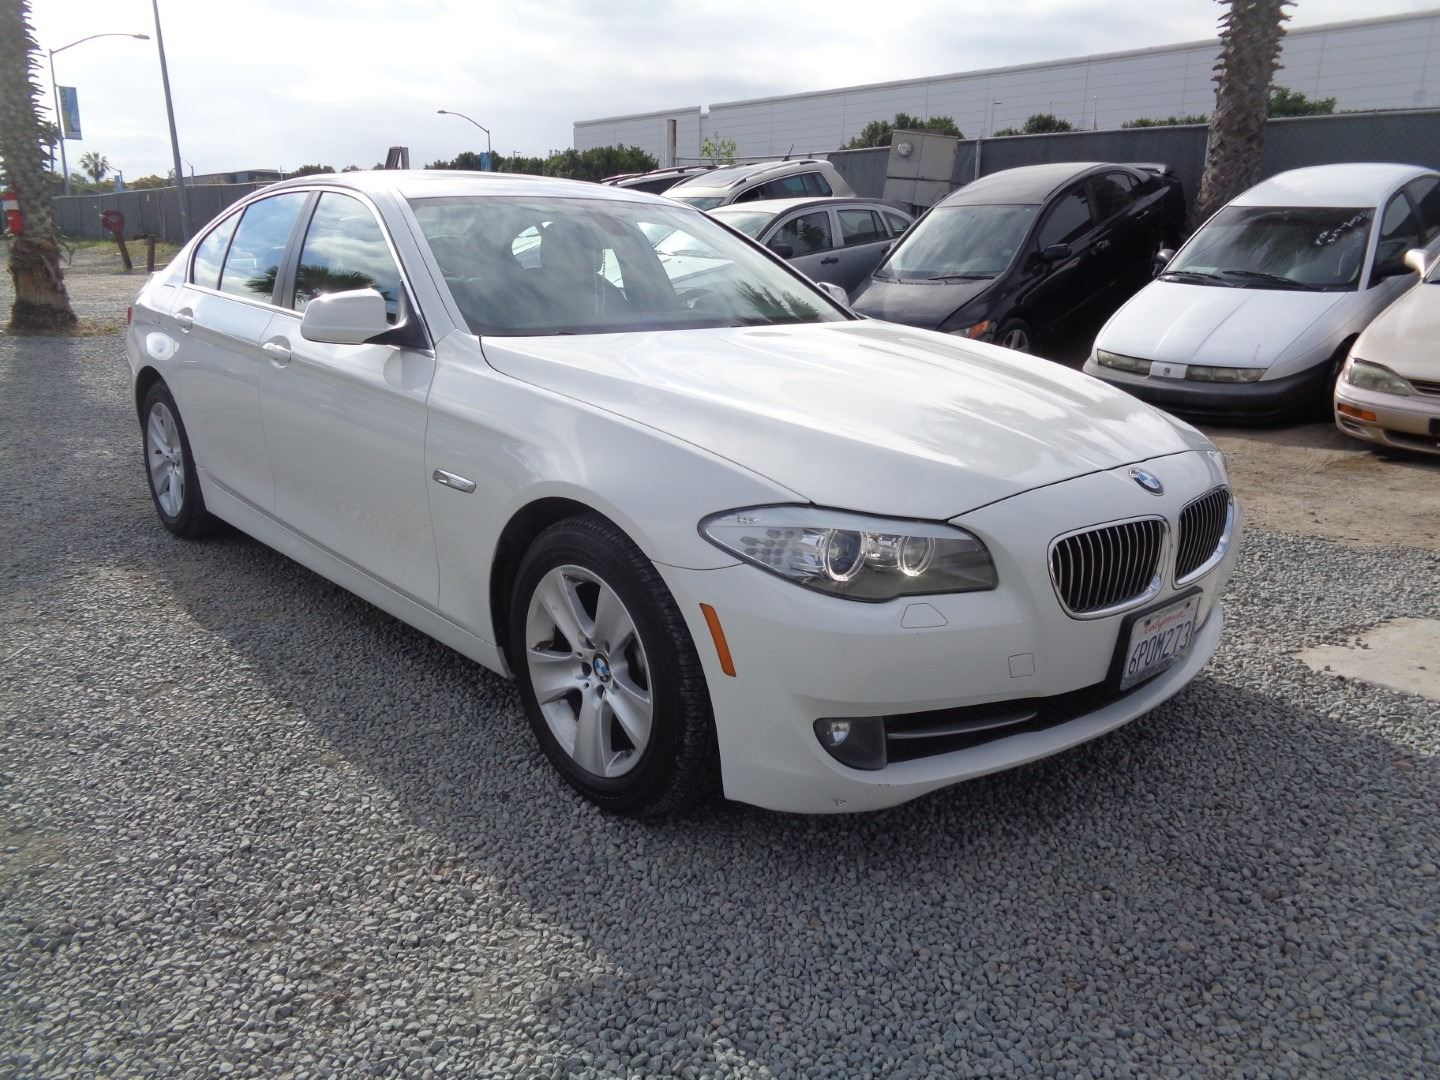 medium resolution of image 1 bmw 528i 2011 t